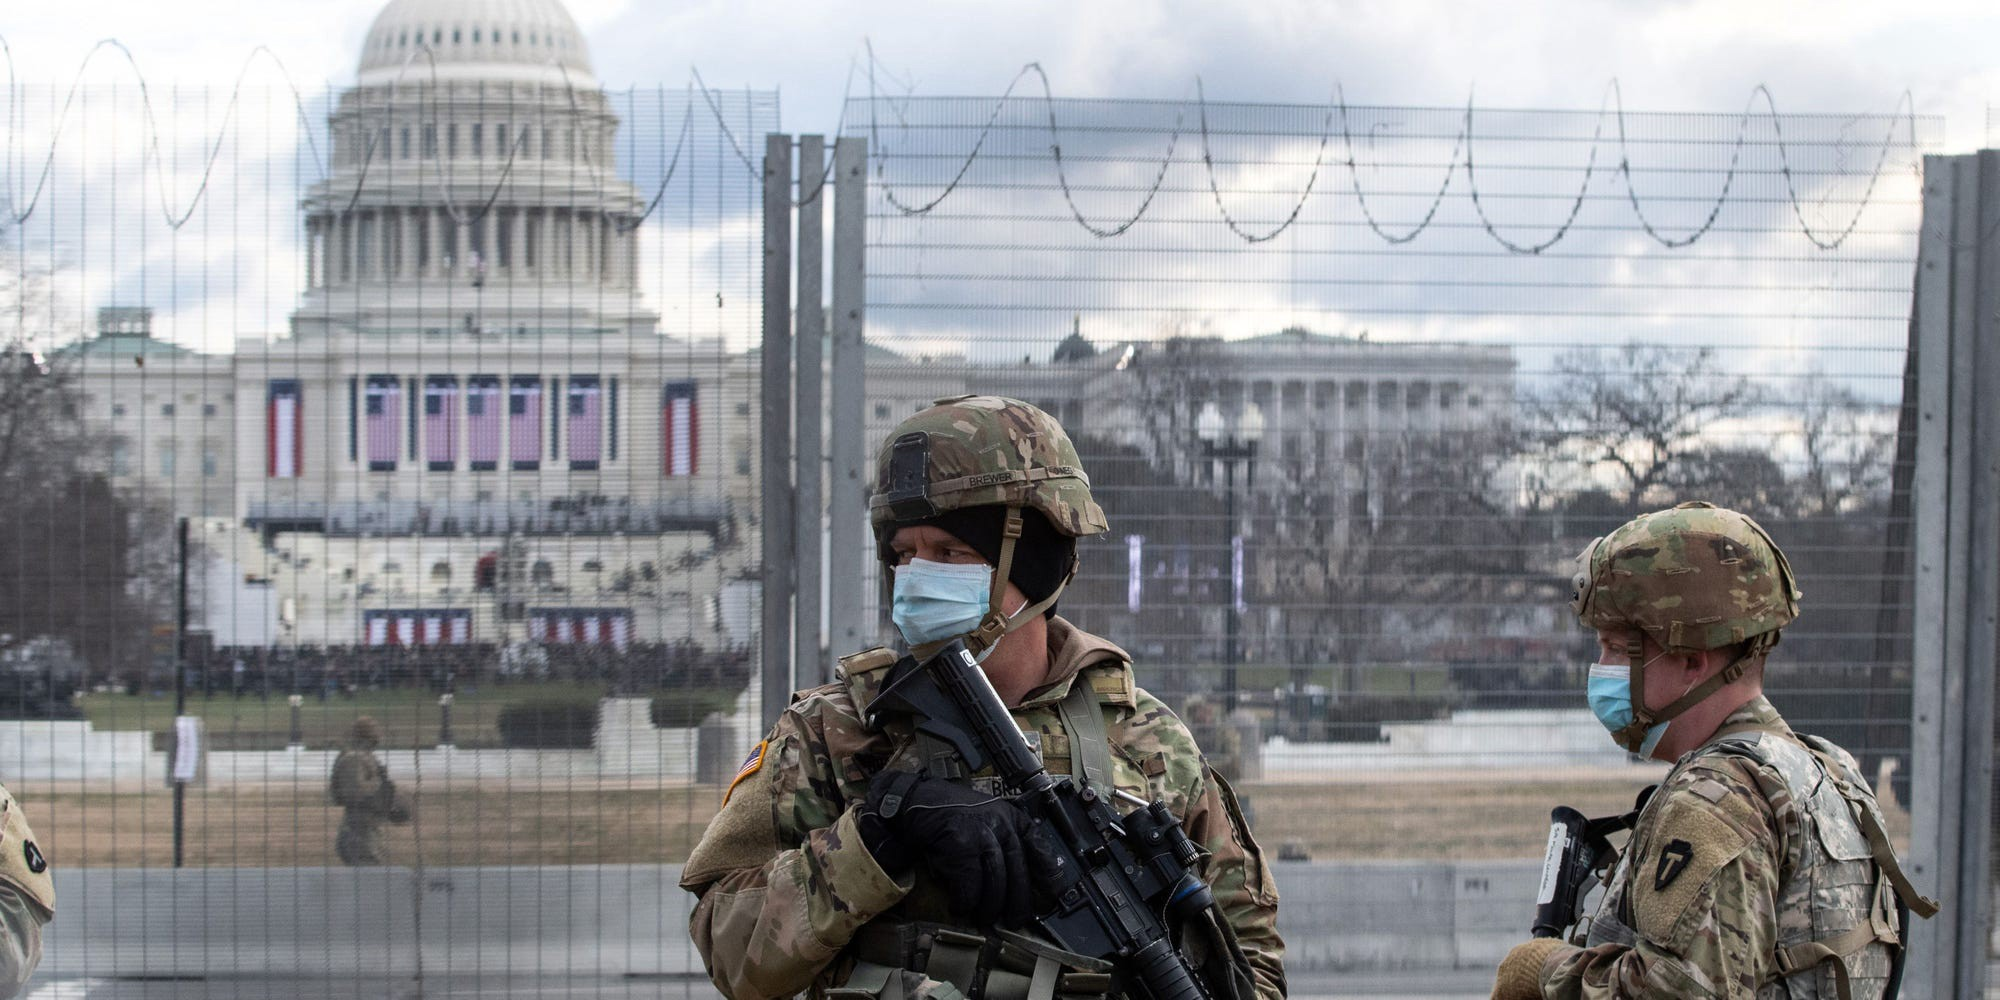 US National Guard troops patrol the vicinity of the US Capitol hours before the Inauguration of US President-Elect Joe Biden.